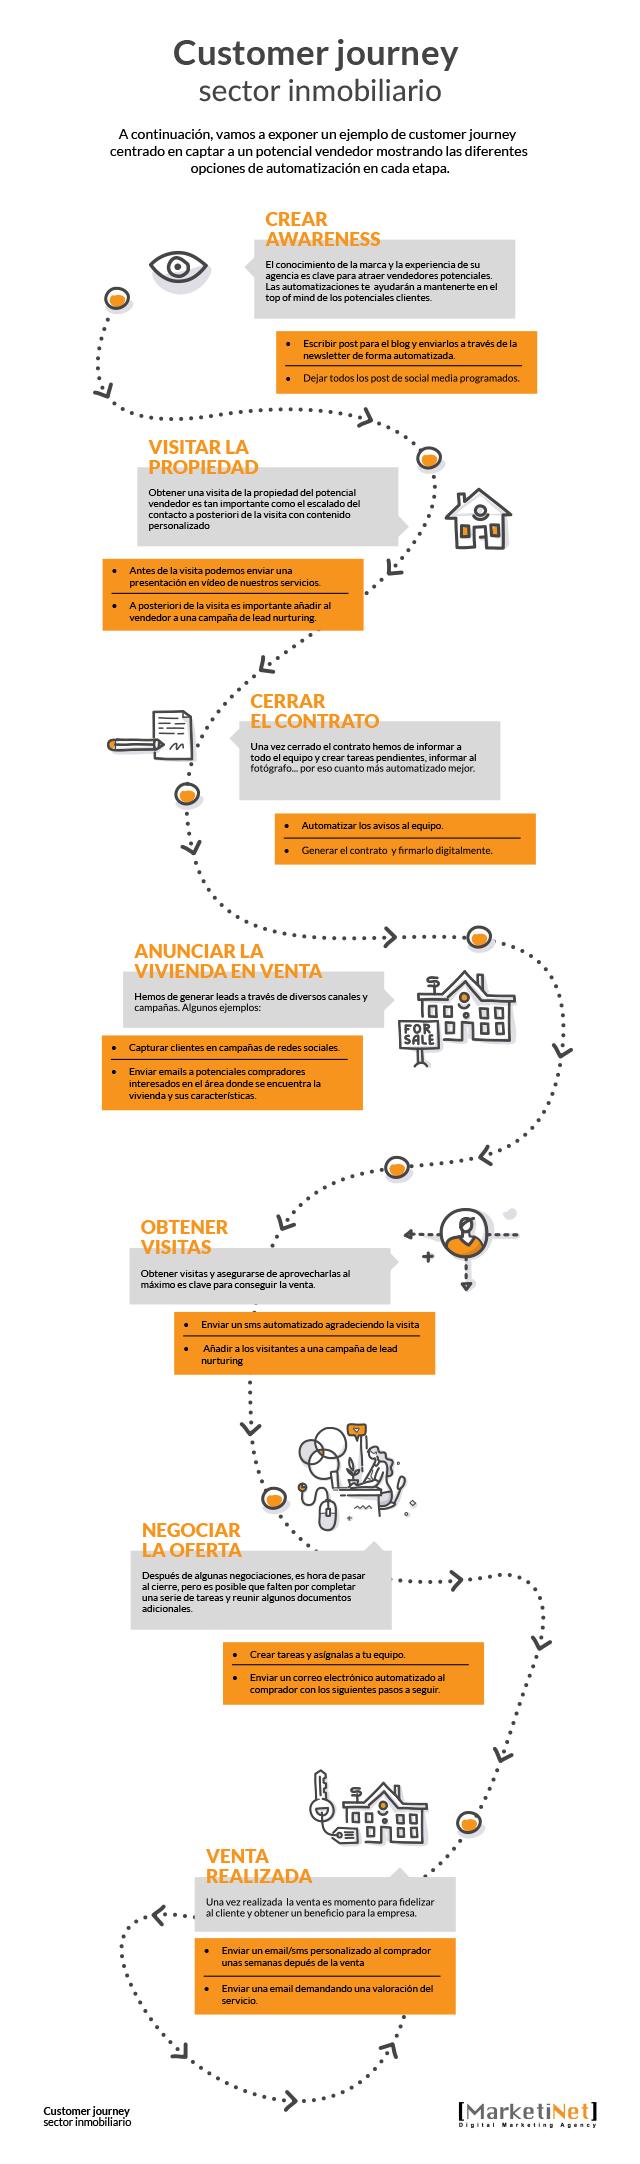 Infografía del Customer journey en el sector inmobiliario